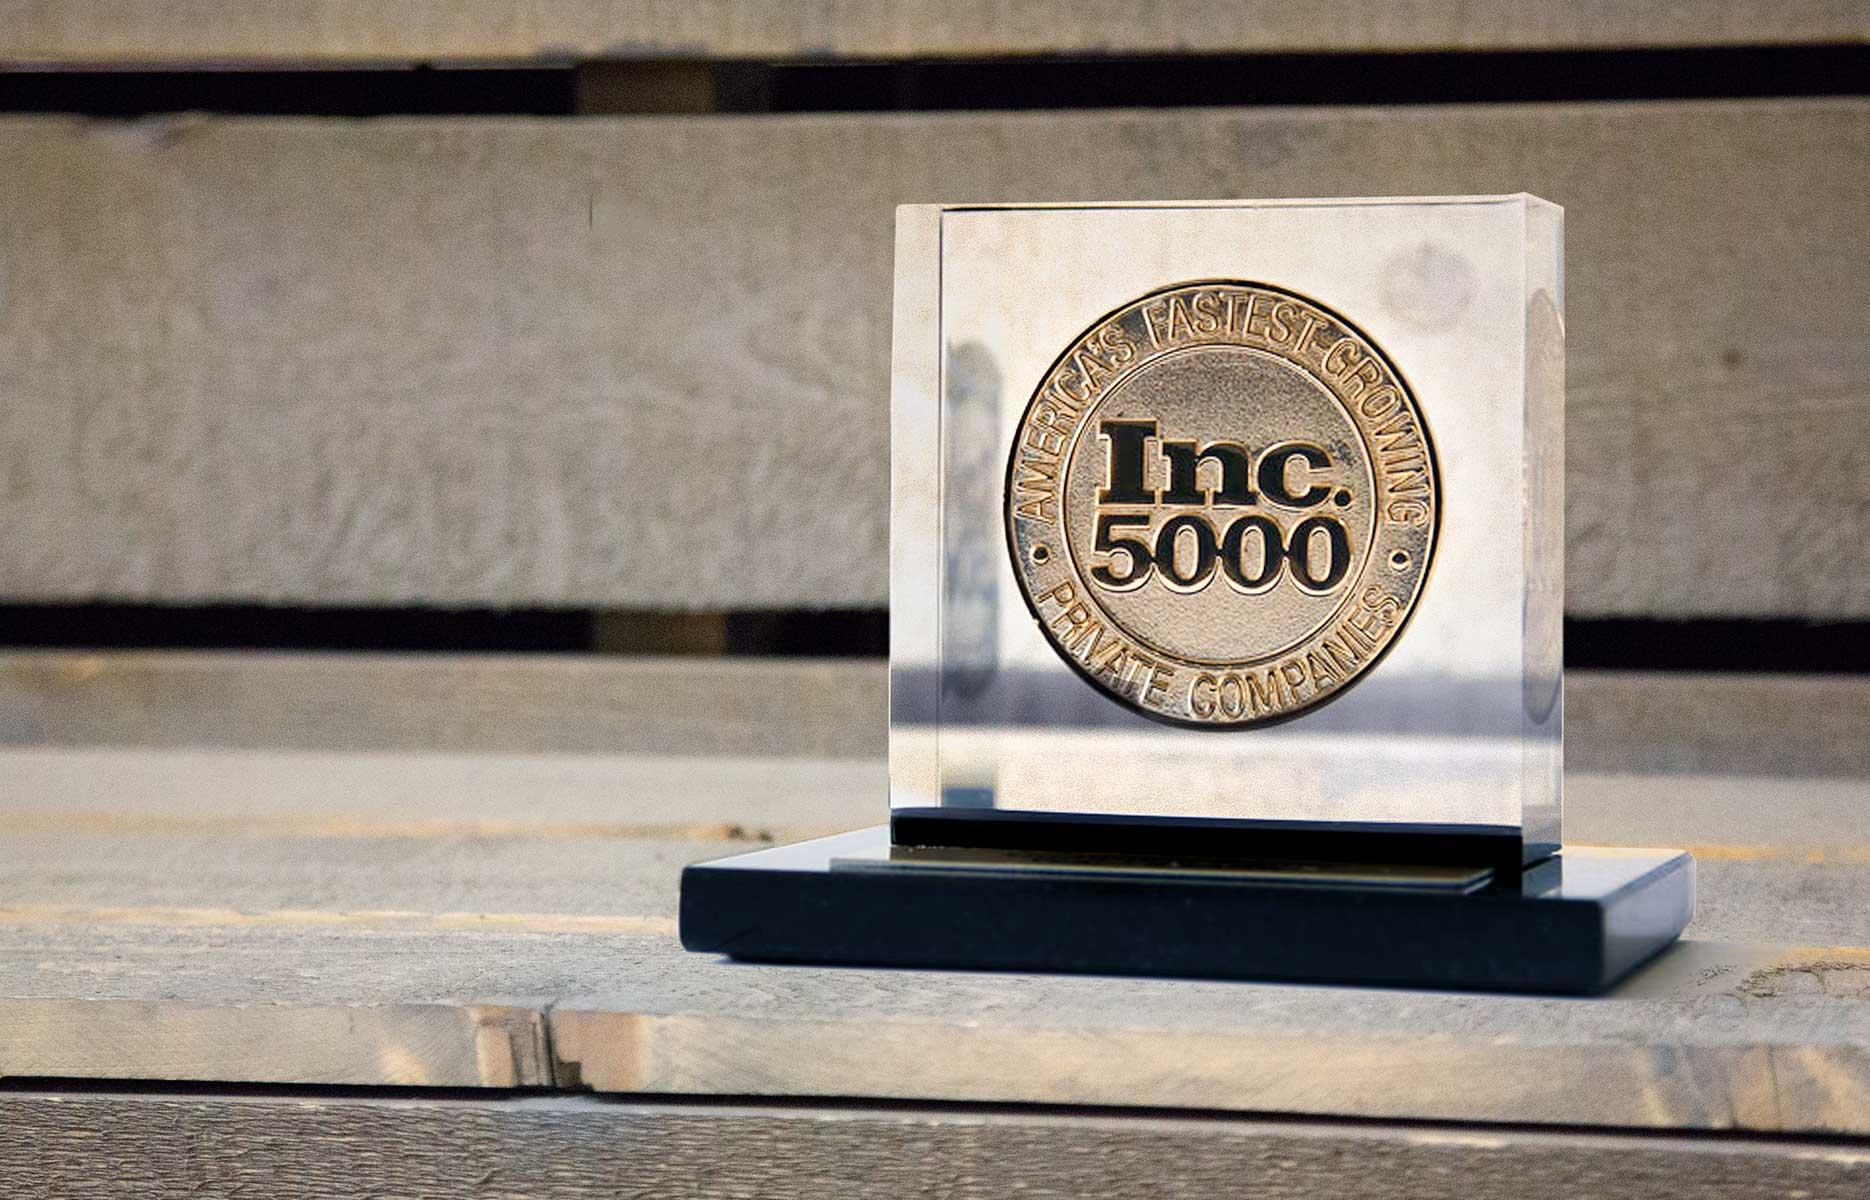 Western Window Systems Named One of America's Fastest-Growing Private Companies on Inc. 5000 List for Second Straight Year